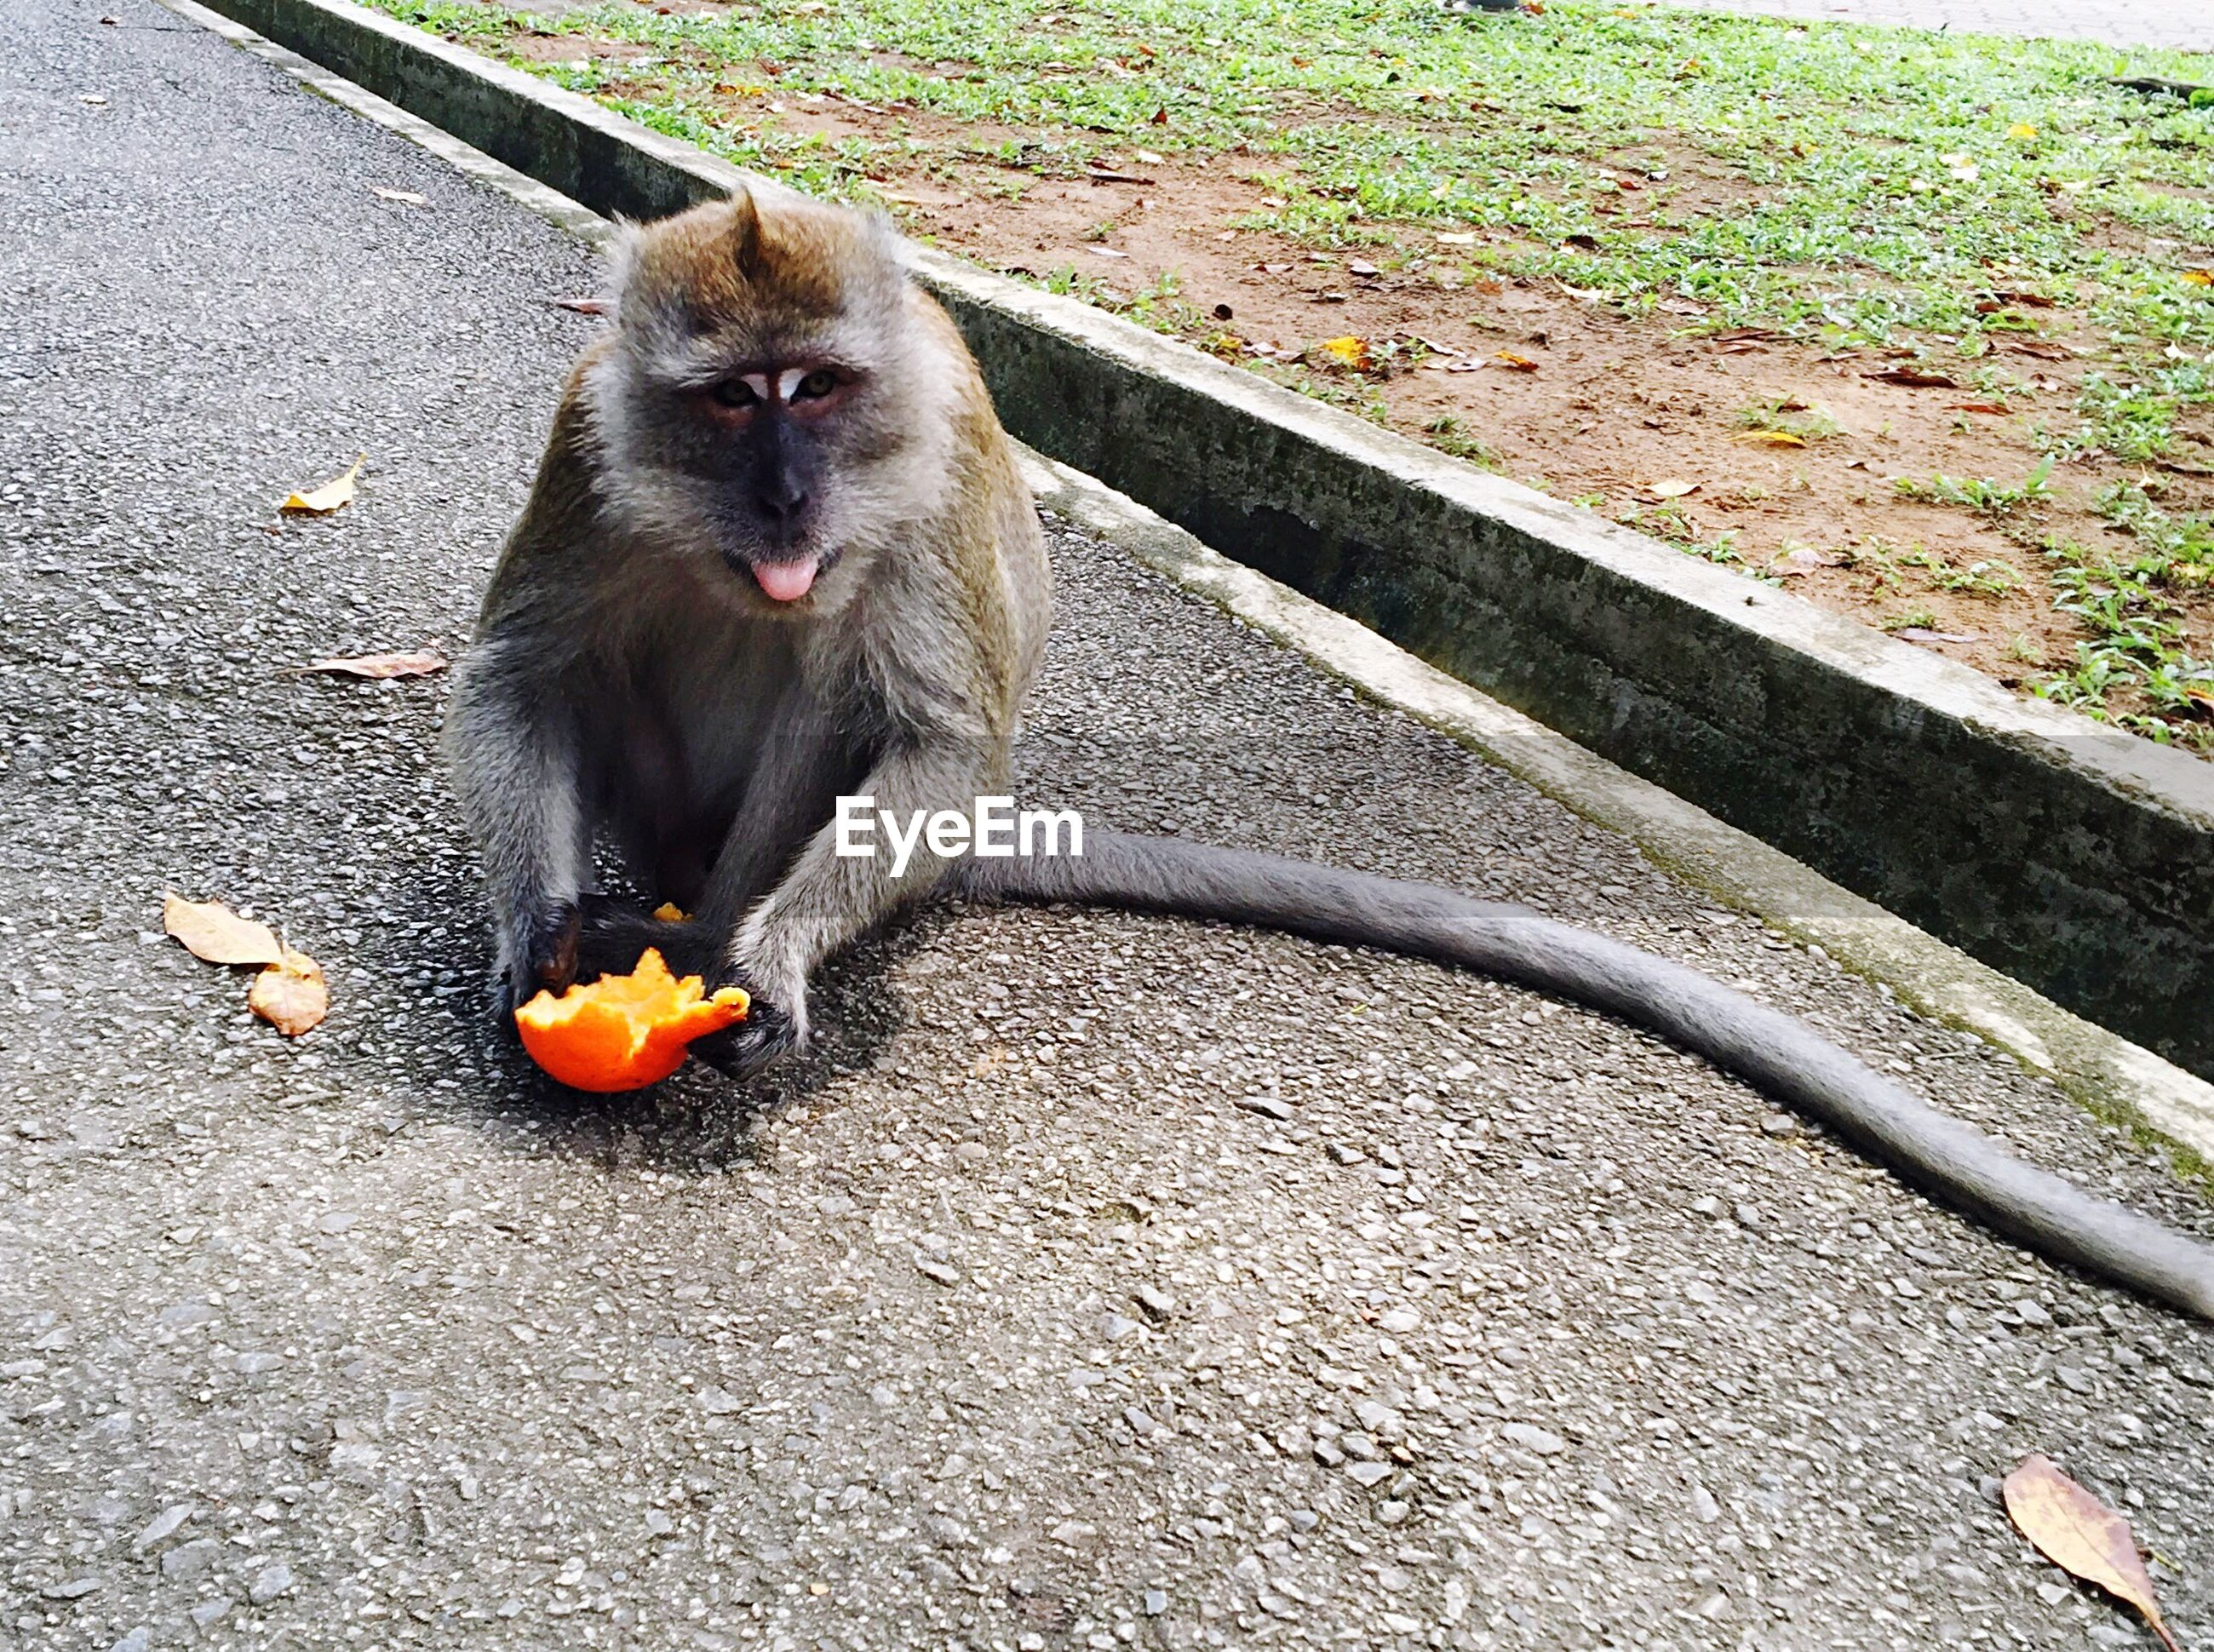 PORTRAIT OF MONKEY EATING FRUITS